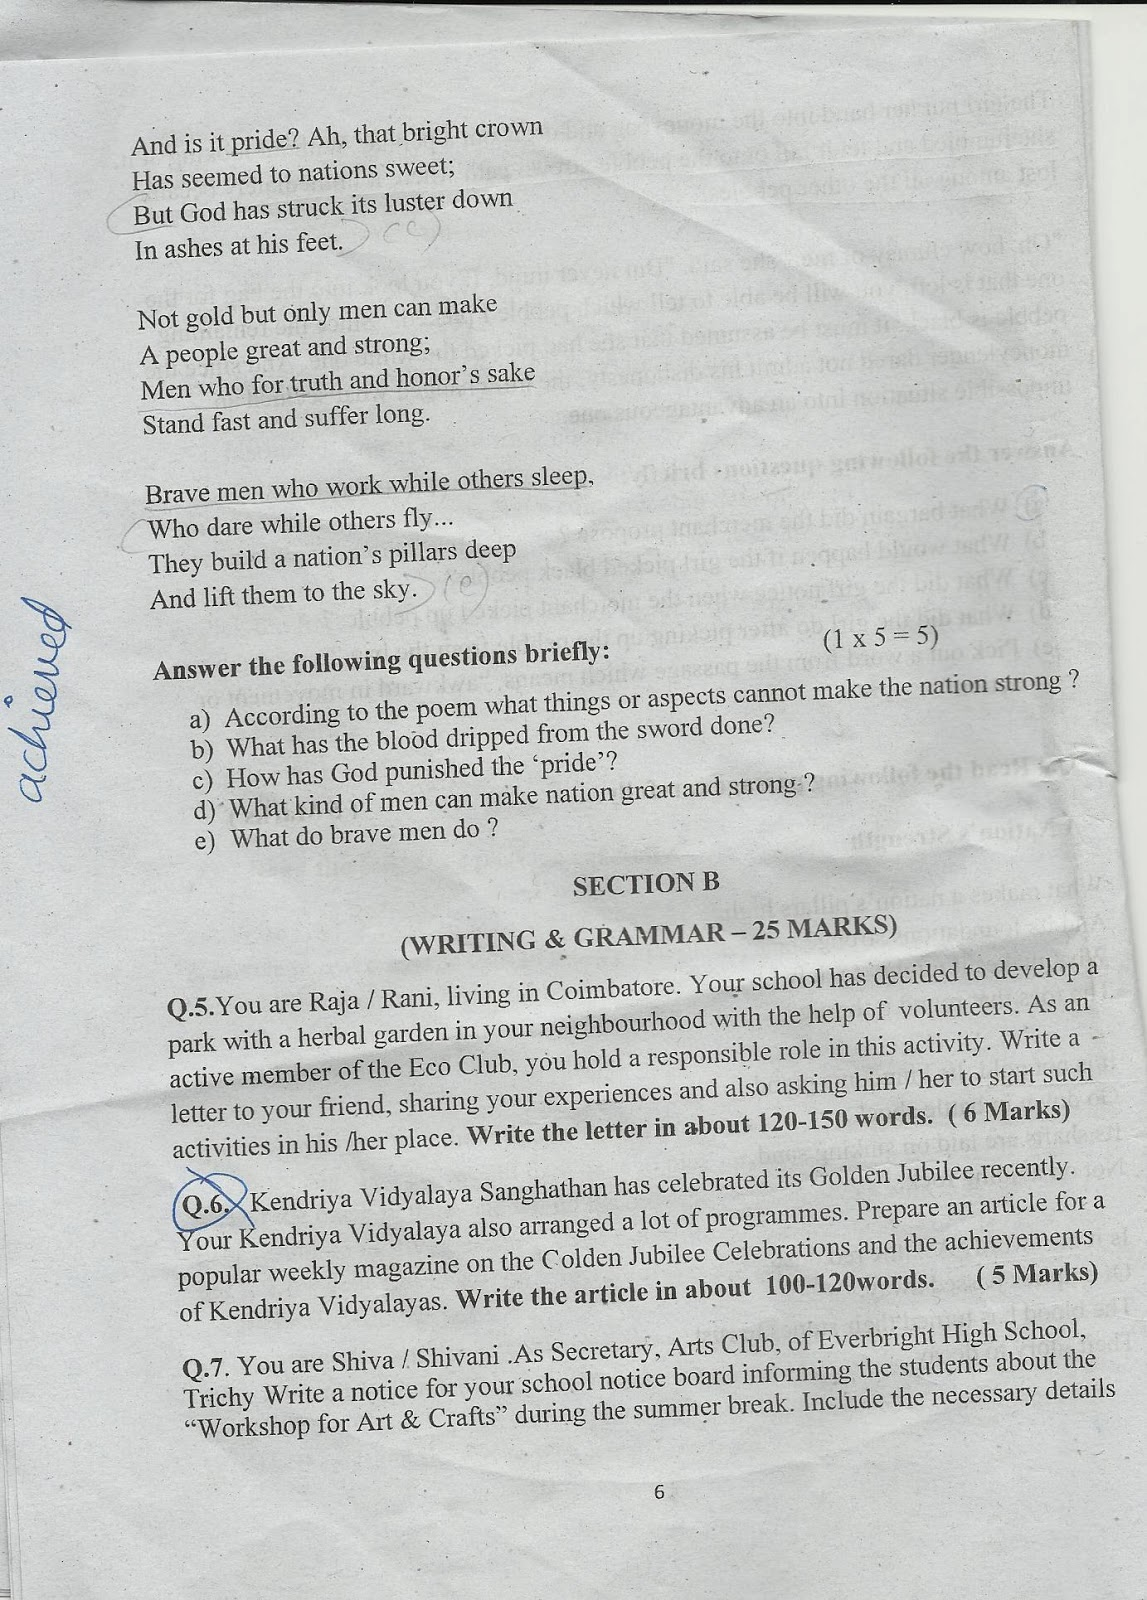 CBSE QUESTION PAPERS: CBSE ENGLISH SA 2 CLASS 9 REAL